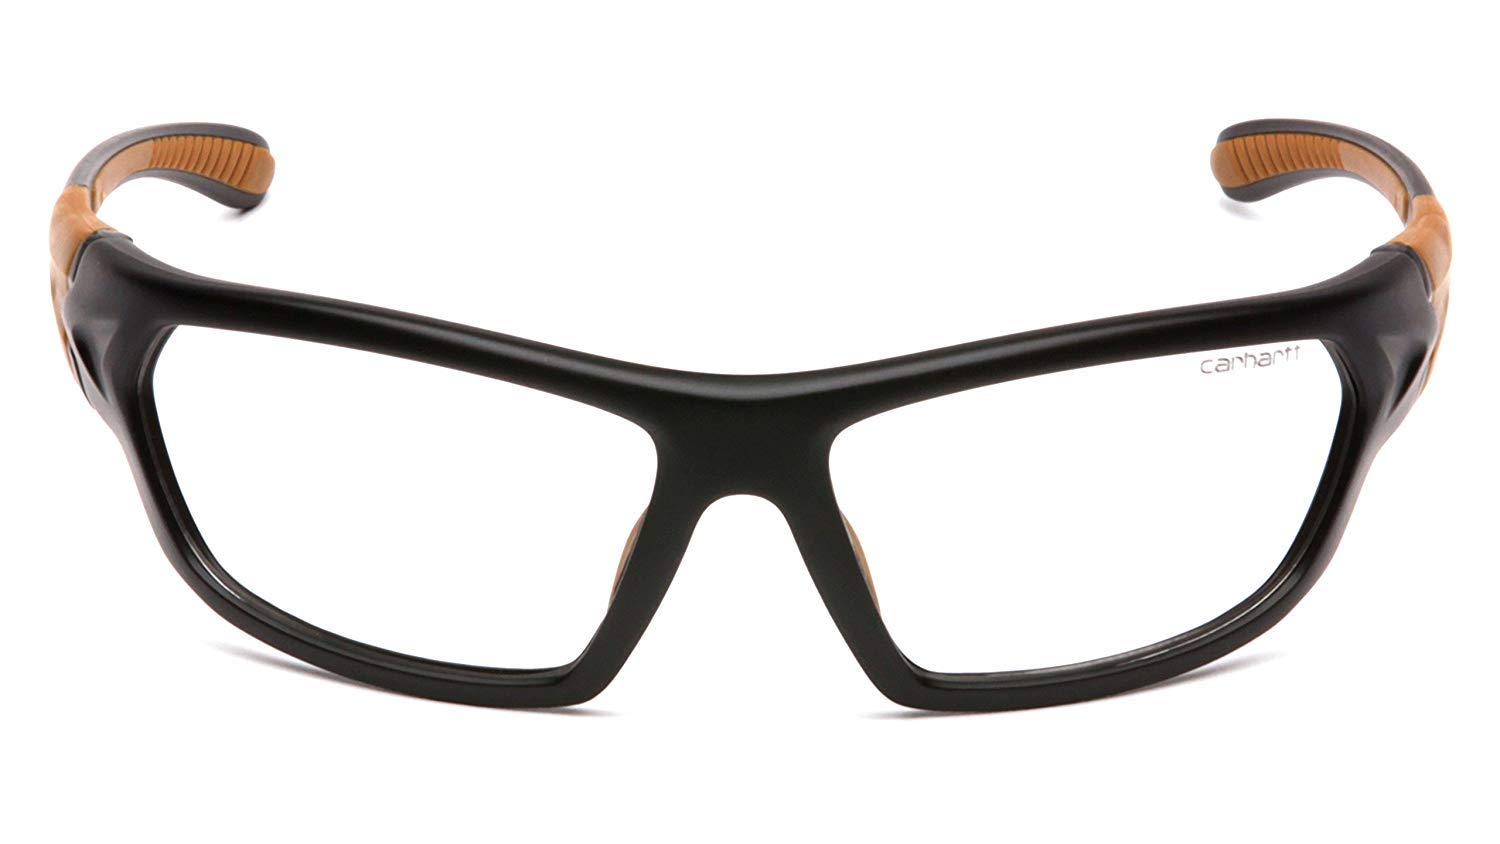 Carhartt Carbondale Safety Glasses with Clear Anti-Fog Lens (2 Pack) by Carhartt (Image #2)